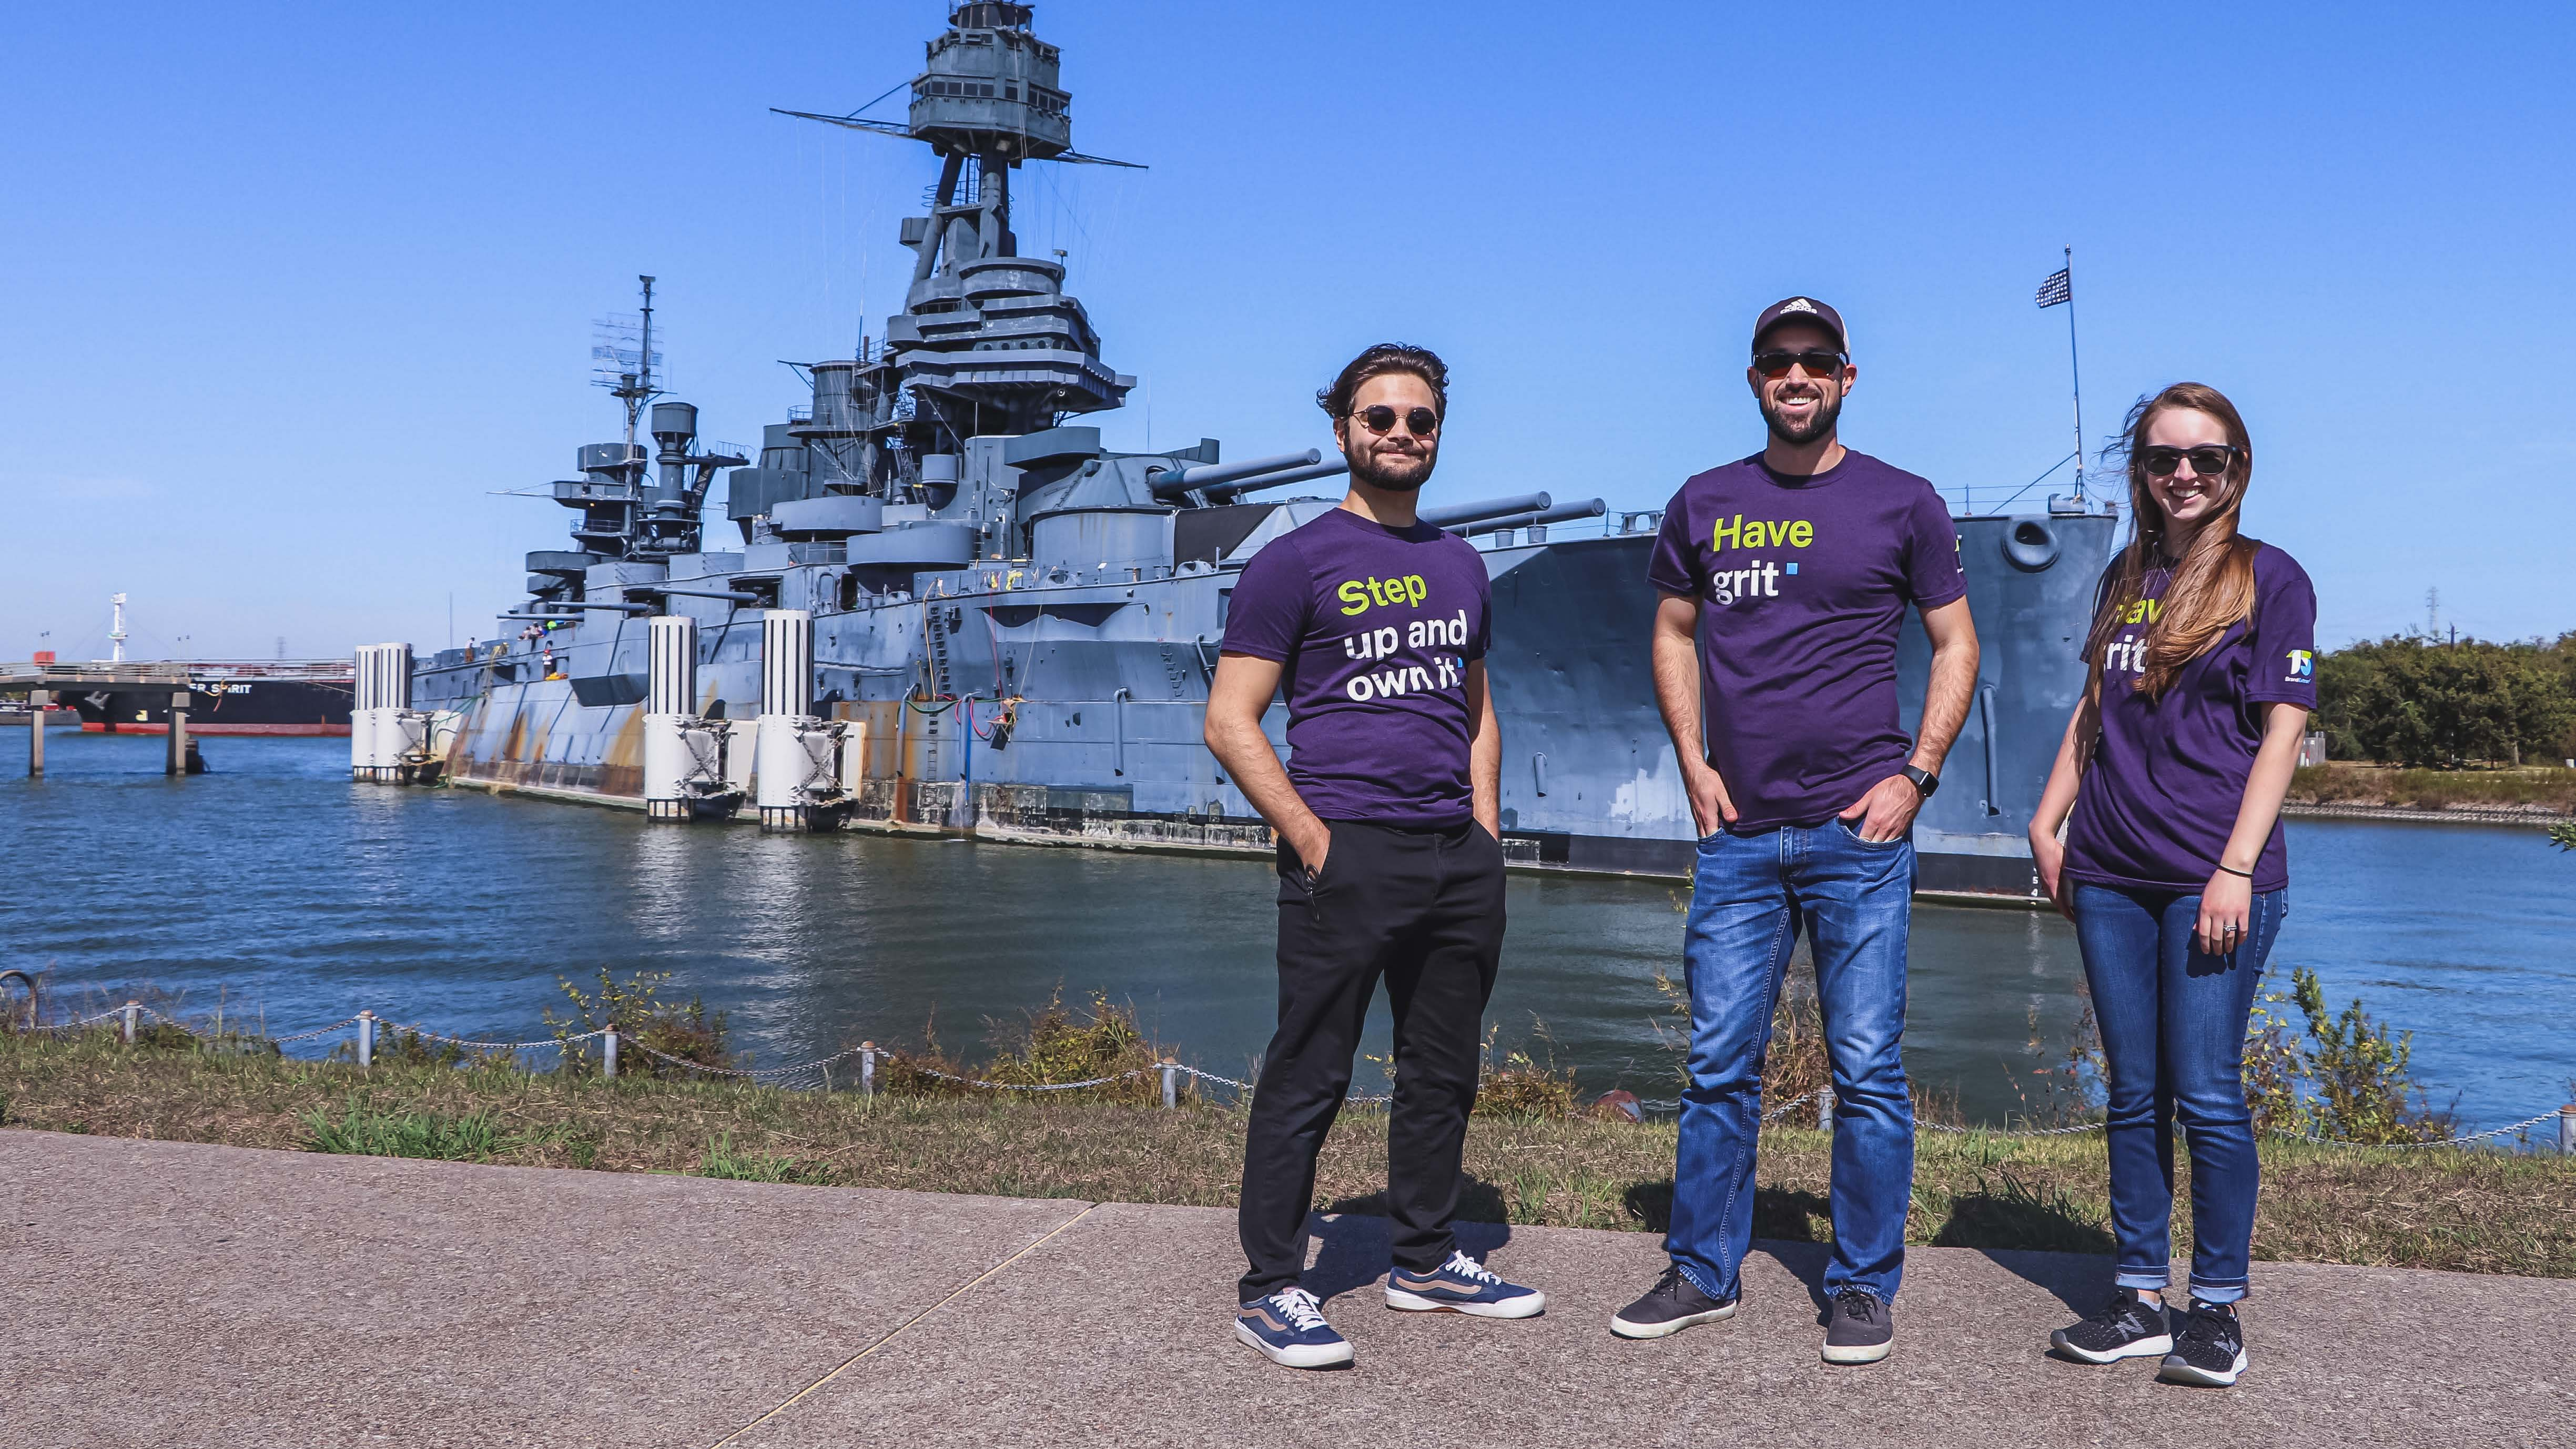 The BE team visits the Battleship Texas.